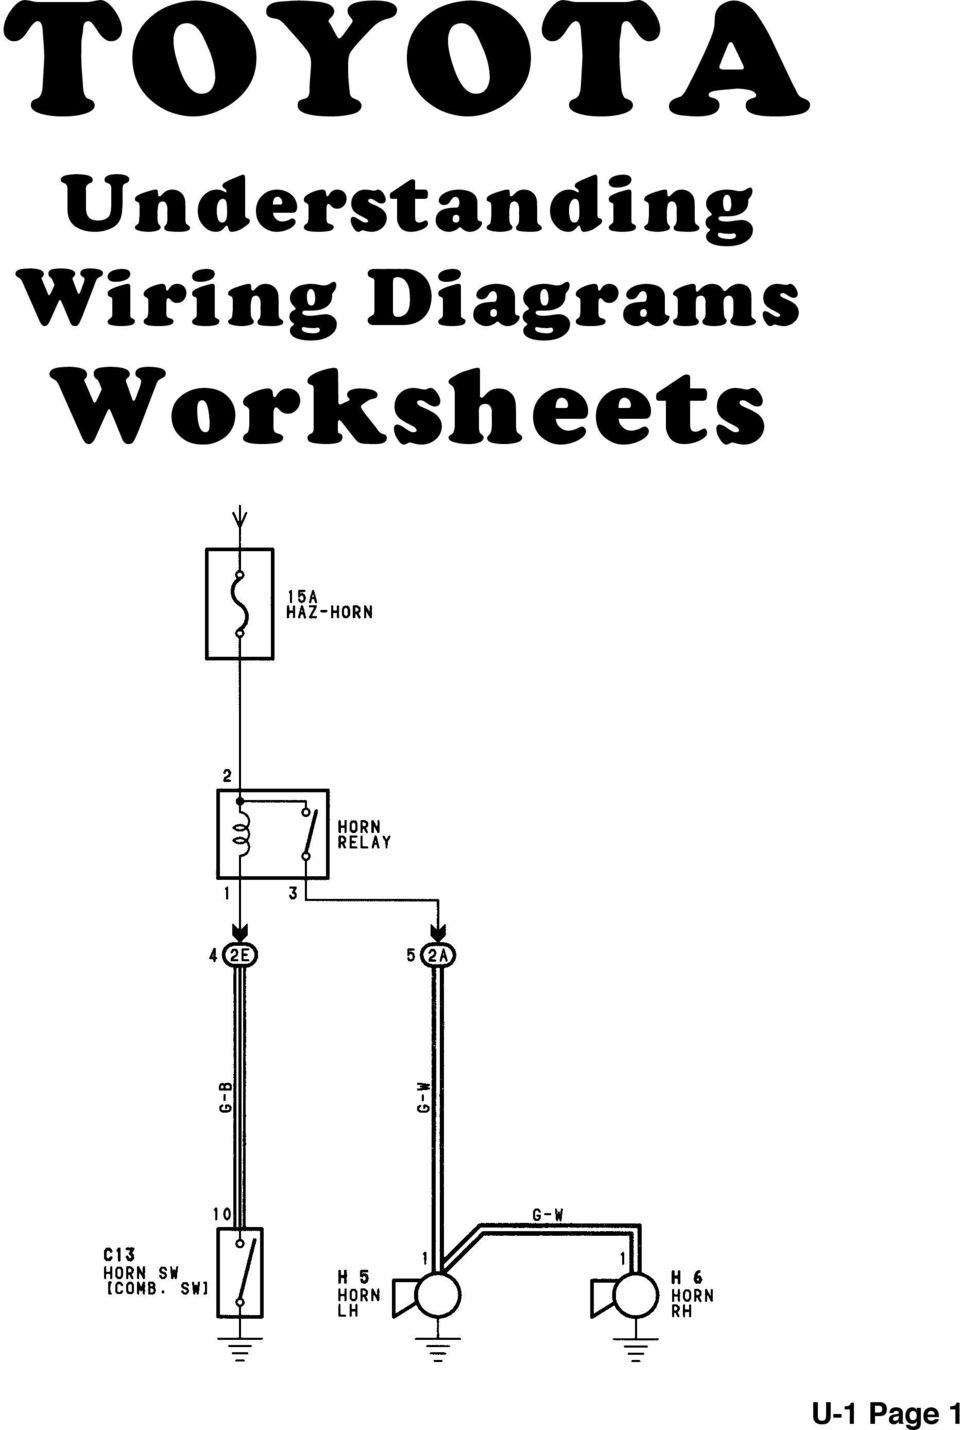 toyota heat wiring diagram body electrical toyota electrical wiring diagram workbook  electrical wiring diagram workbook